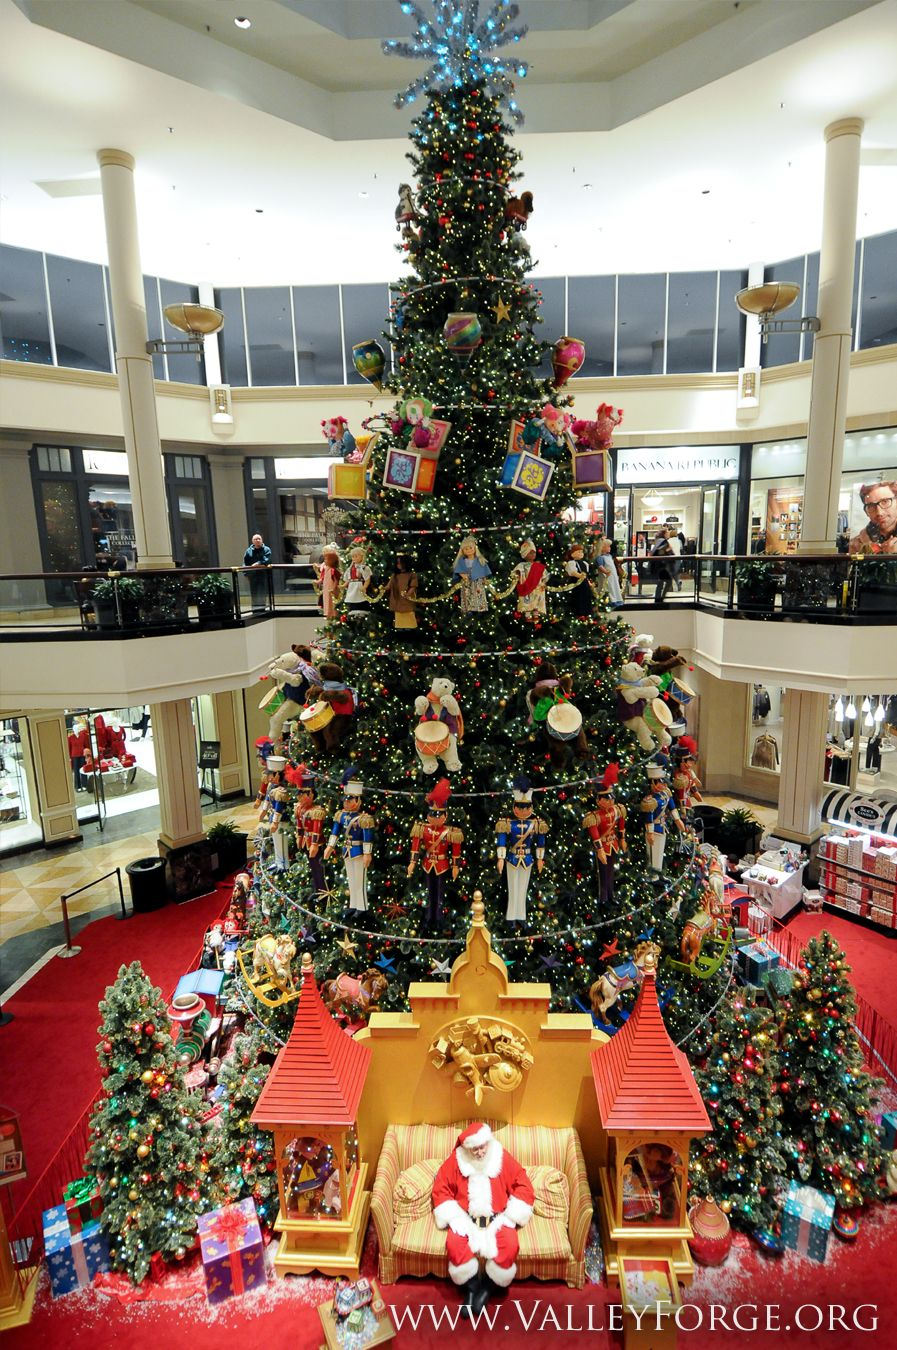 King Of Prussia Mall The Largest Retail Shopping Complex In The U S Boasts Impressive Seasonal Decoration King Of Prussia Mall King Of Prussia Holiday Tours